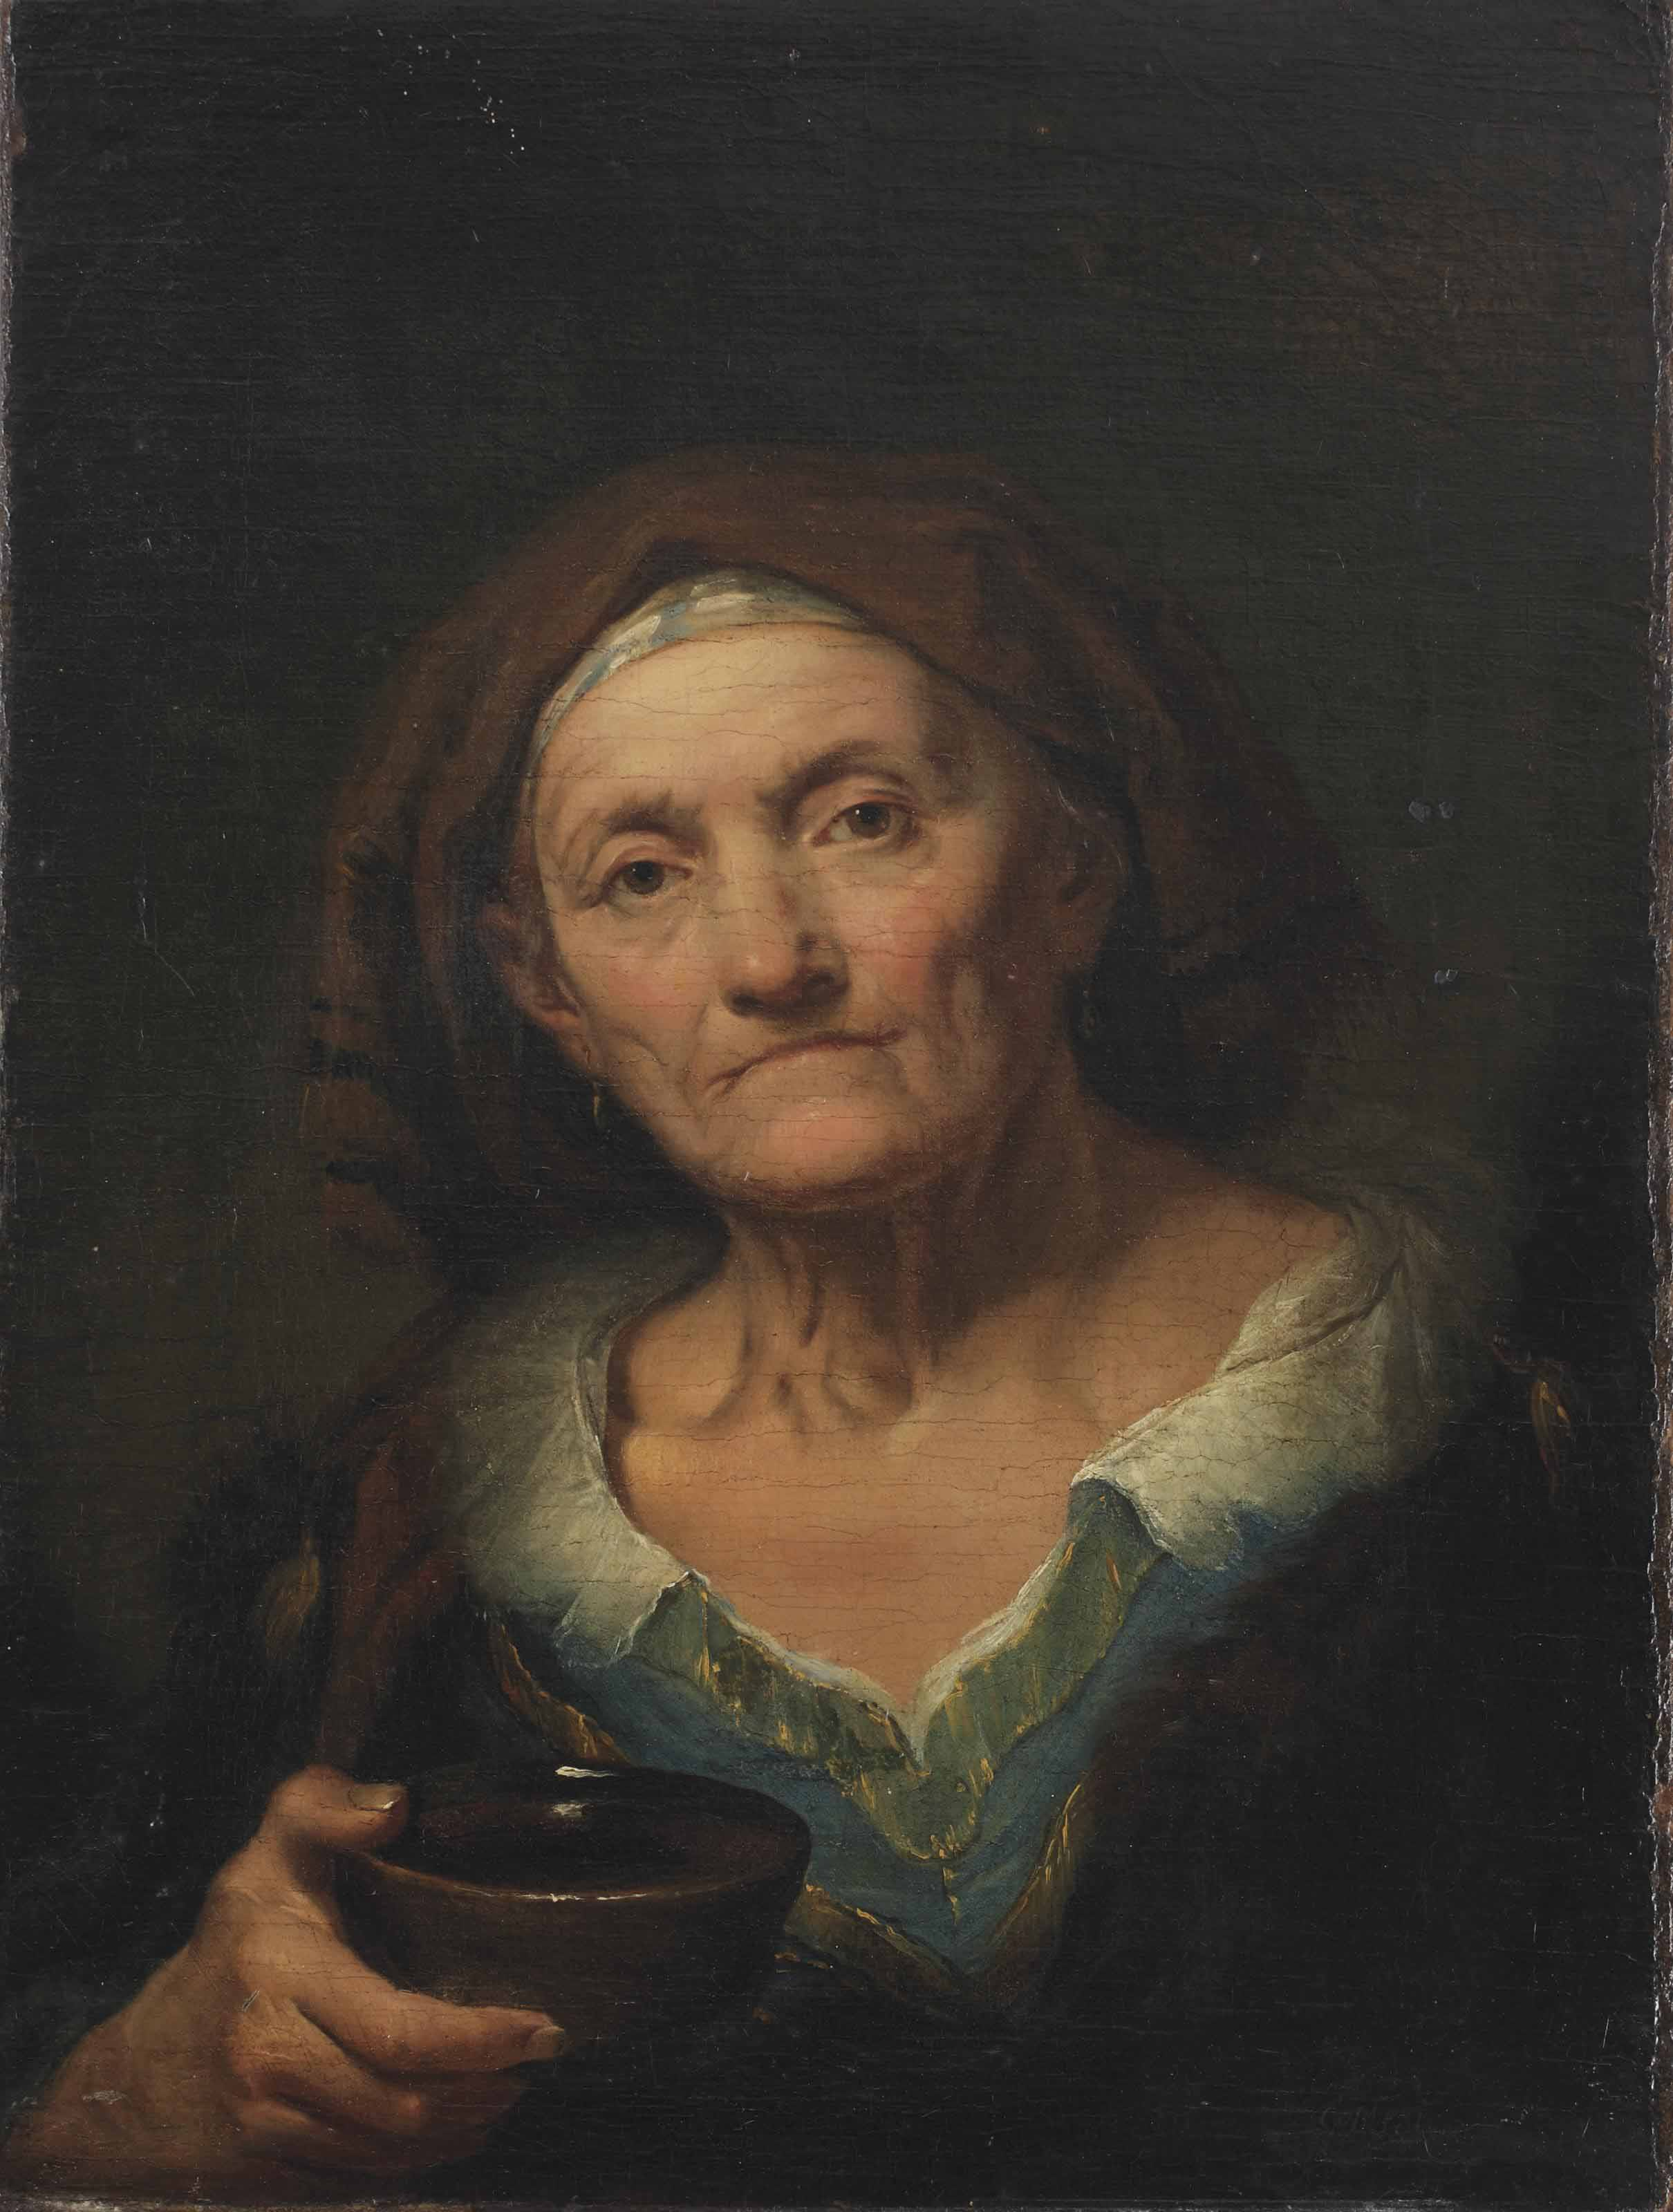 A tronie of an old woman holding a cup